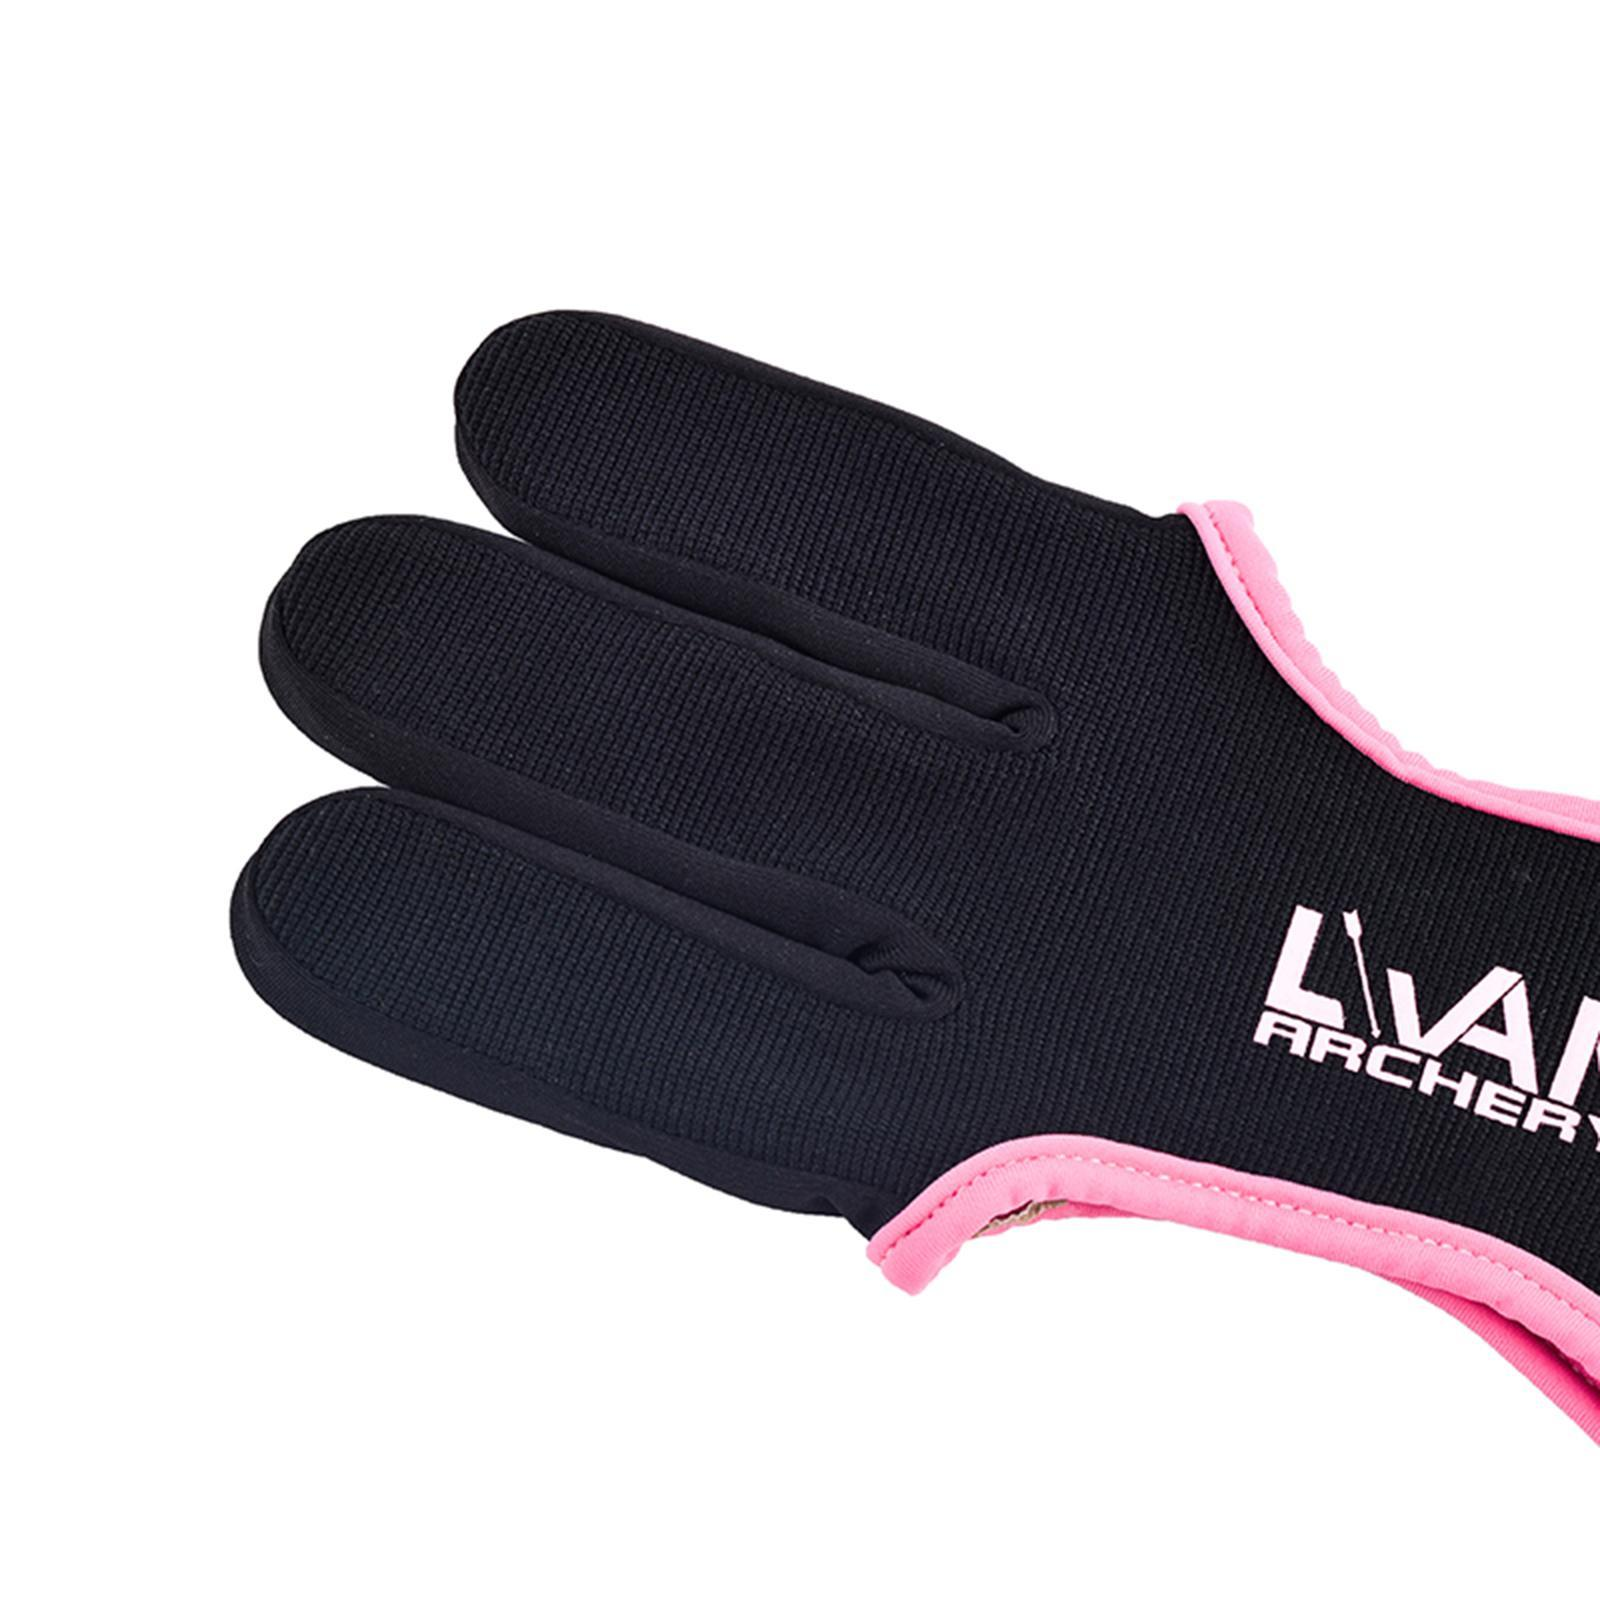 thumbnail 41 - Archery Glove for Recurve & Compound Bow 3 Finger Guard for Women Men Youth